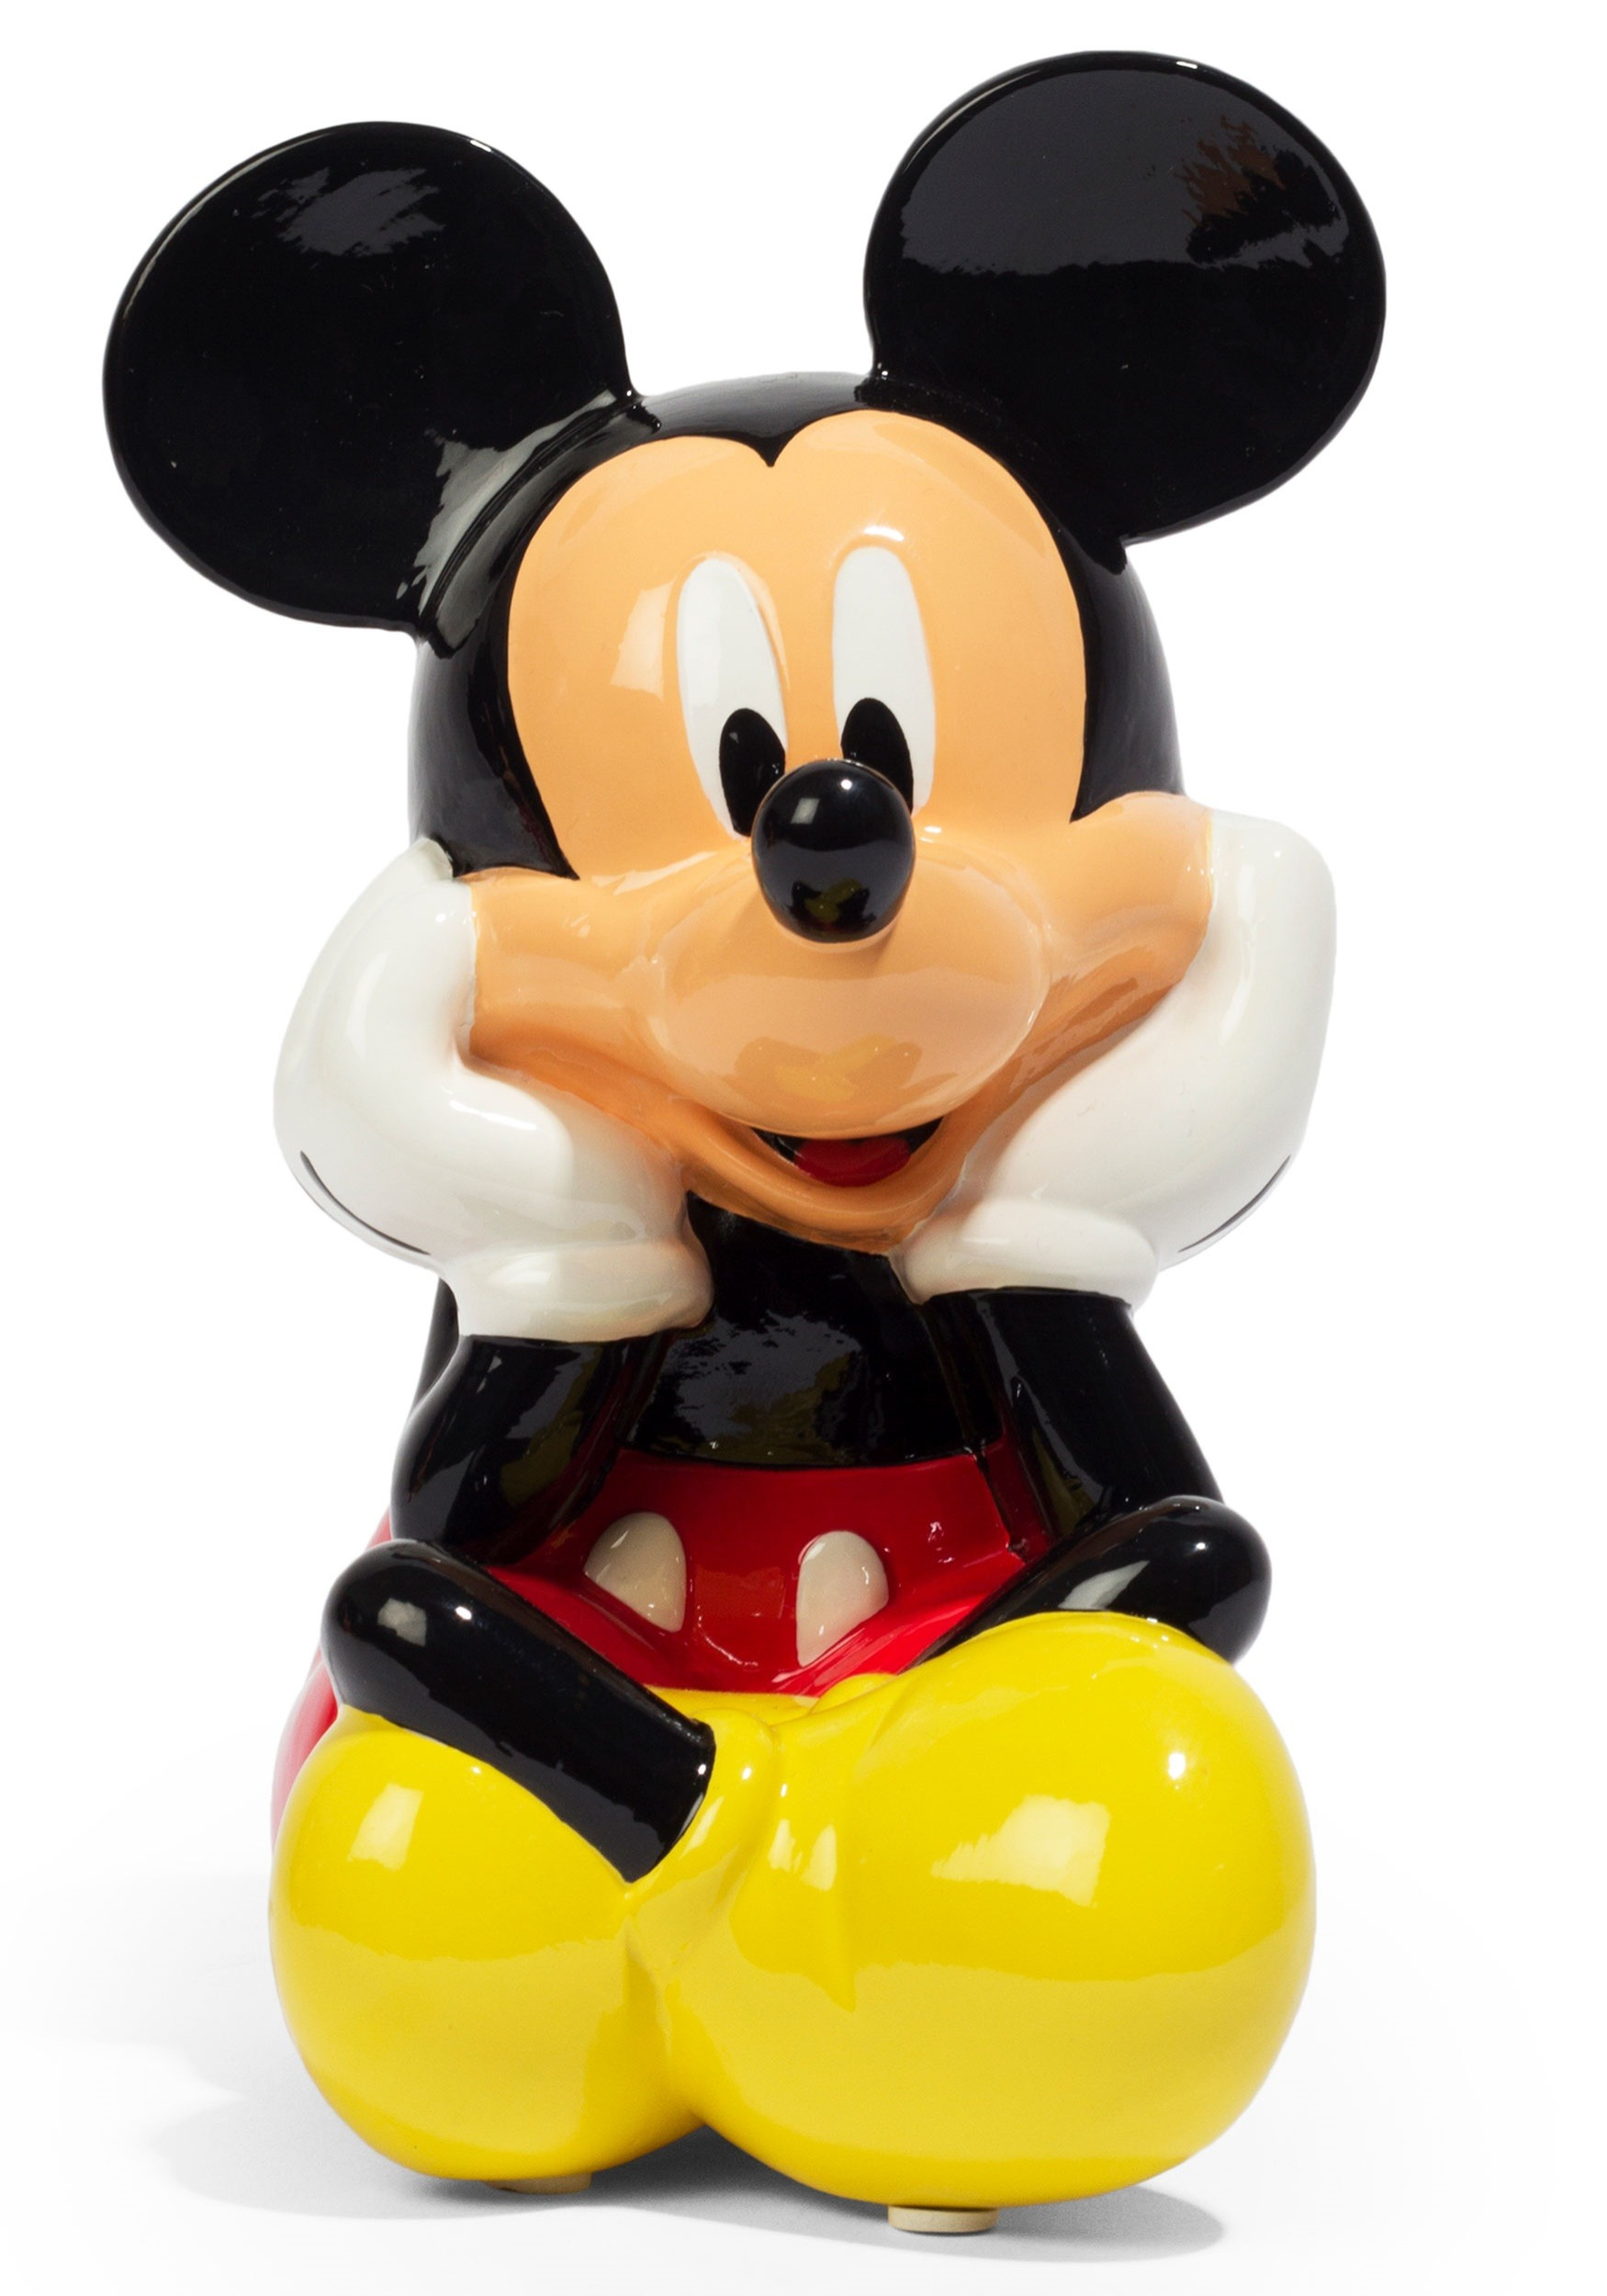 Ceramic Coin Bank - Disney Mickey Mouse